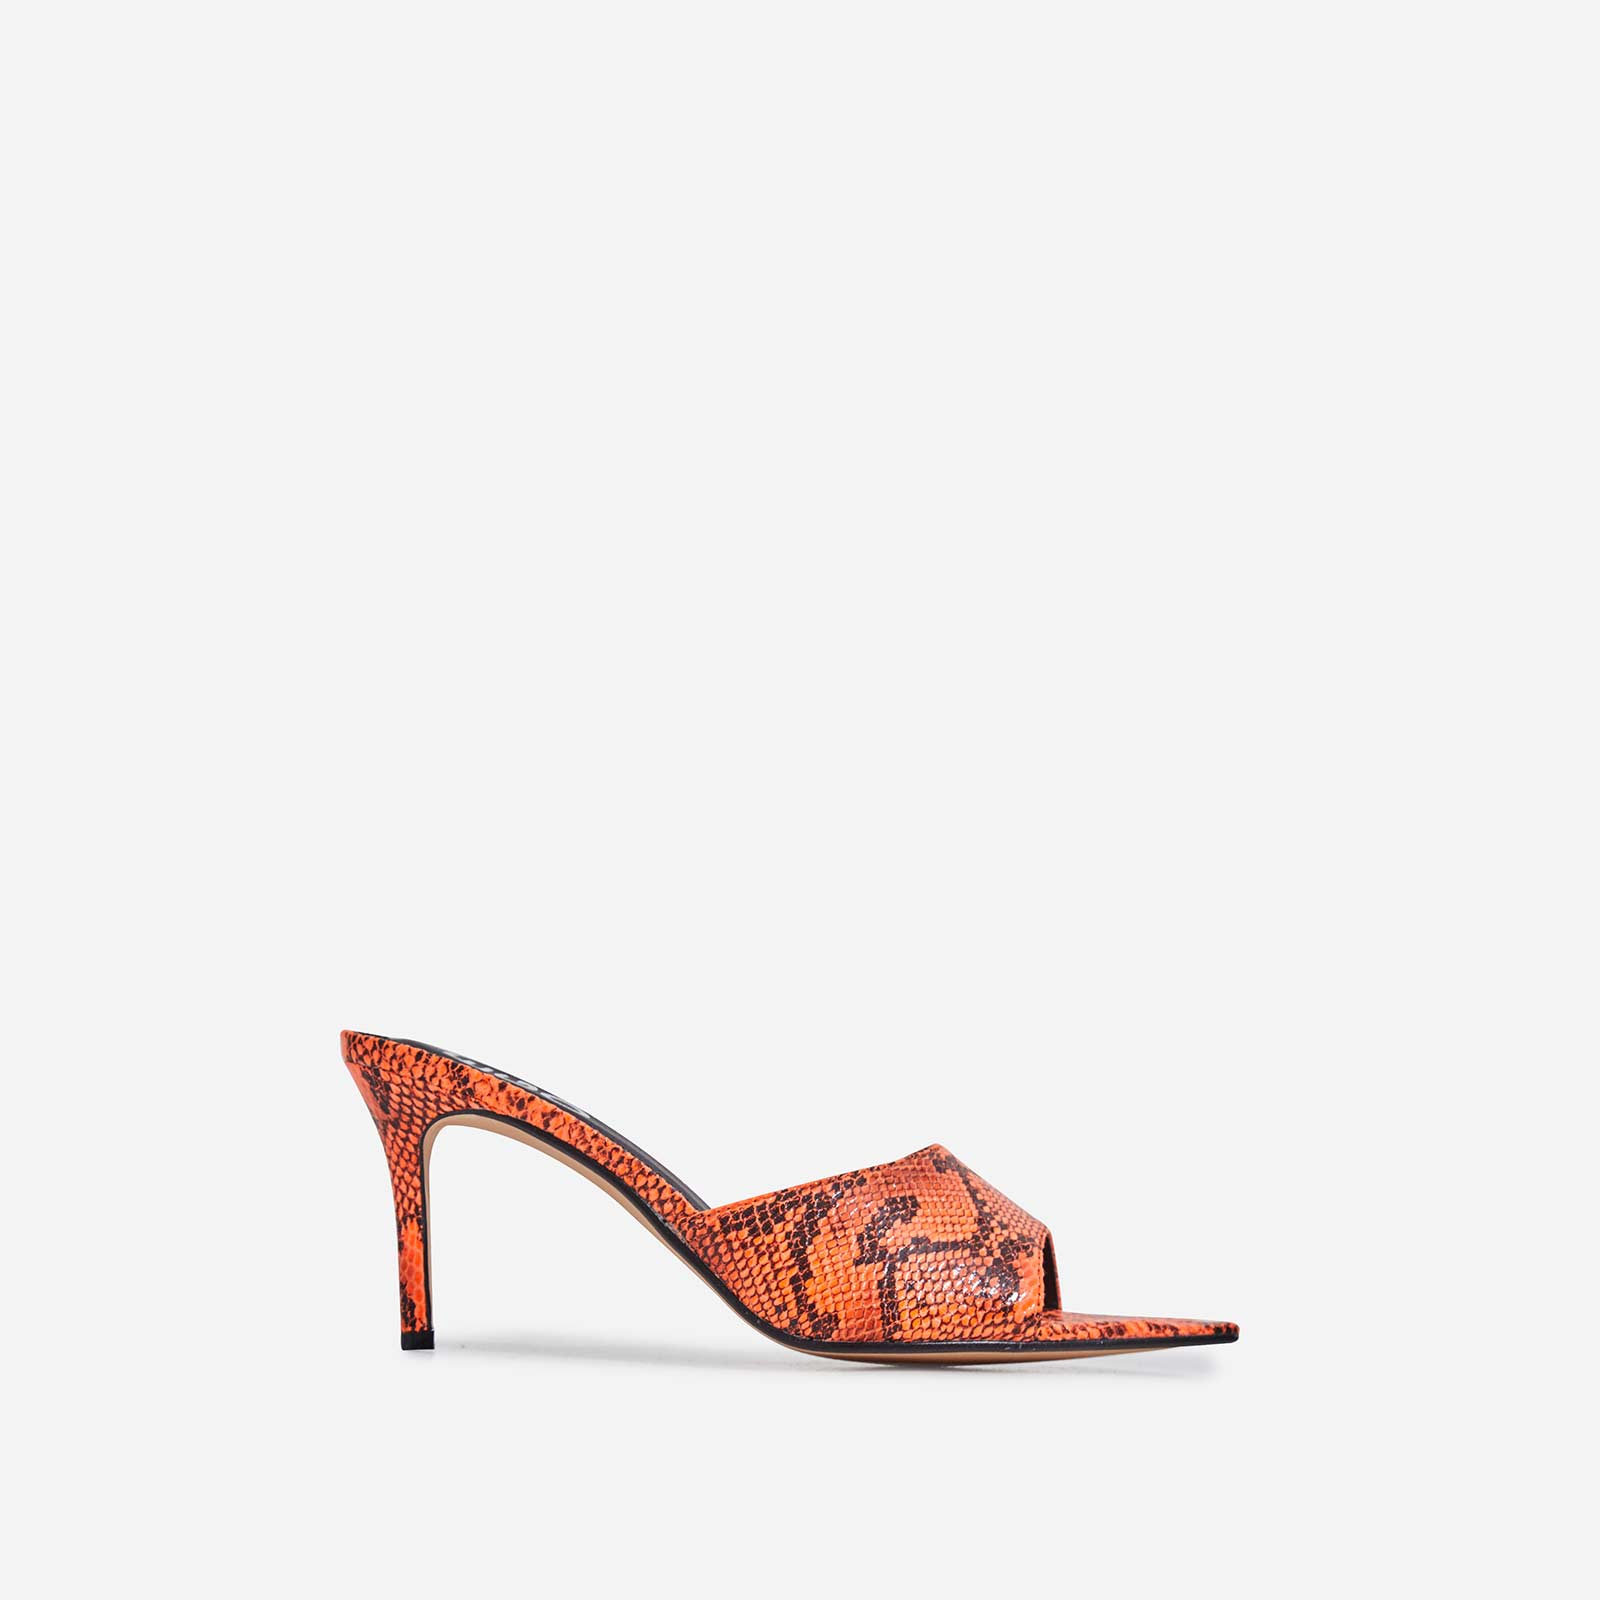 Sansa Pointed Peep Toe Heel Mule In Neon Orange Snake Print Faux Leather